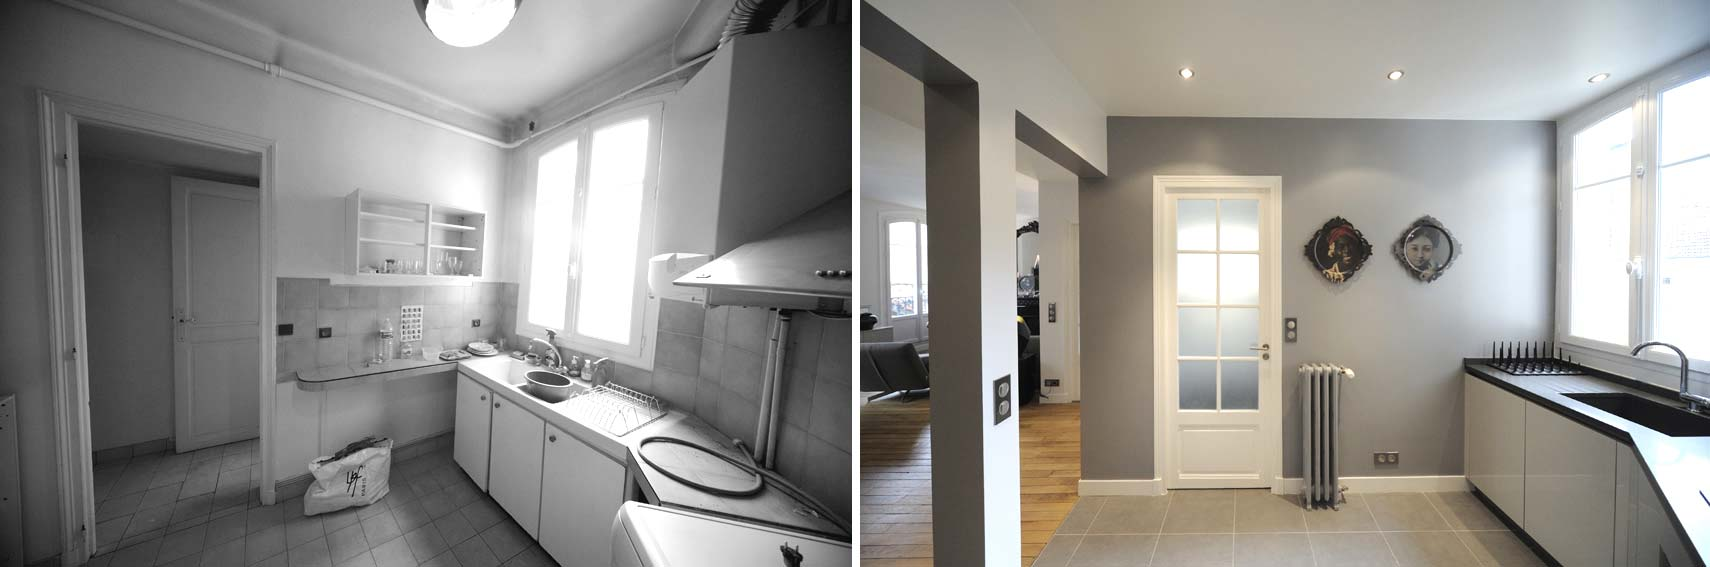 Avant apr s transformation d 39 un appartement de 65m2 du for Relooking maison interieur